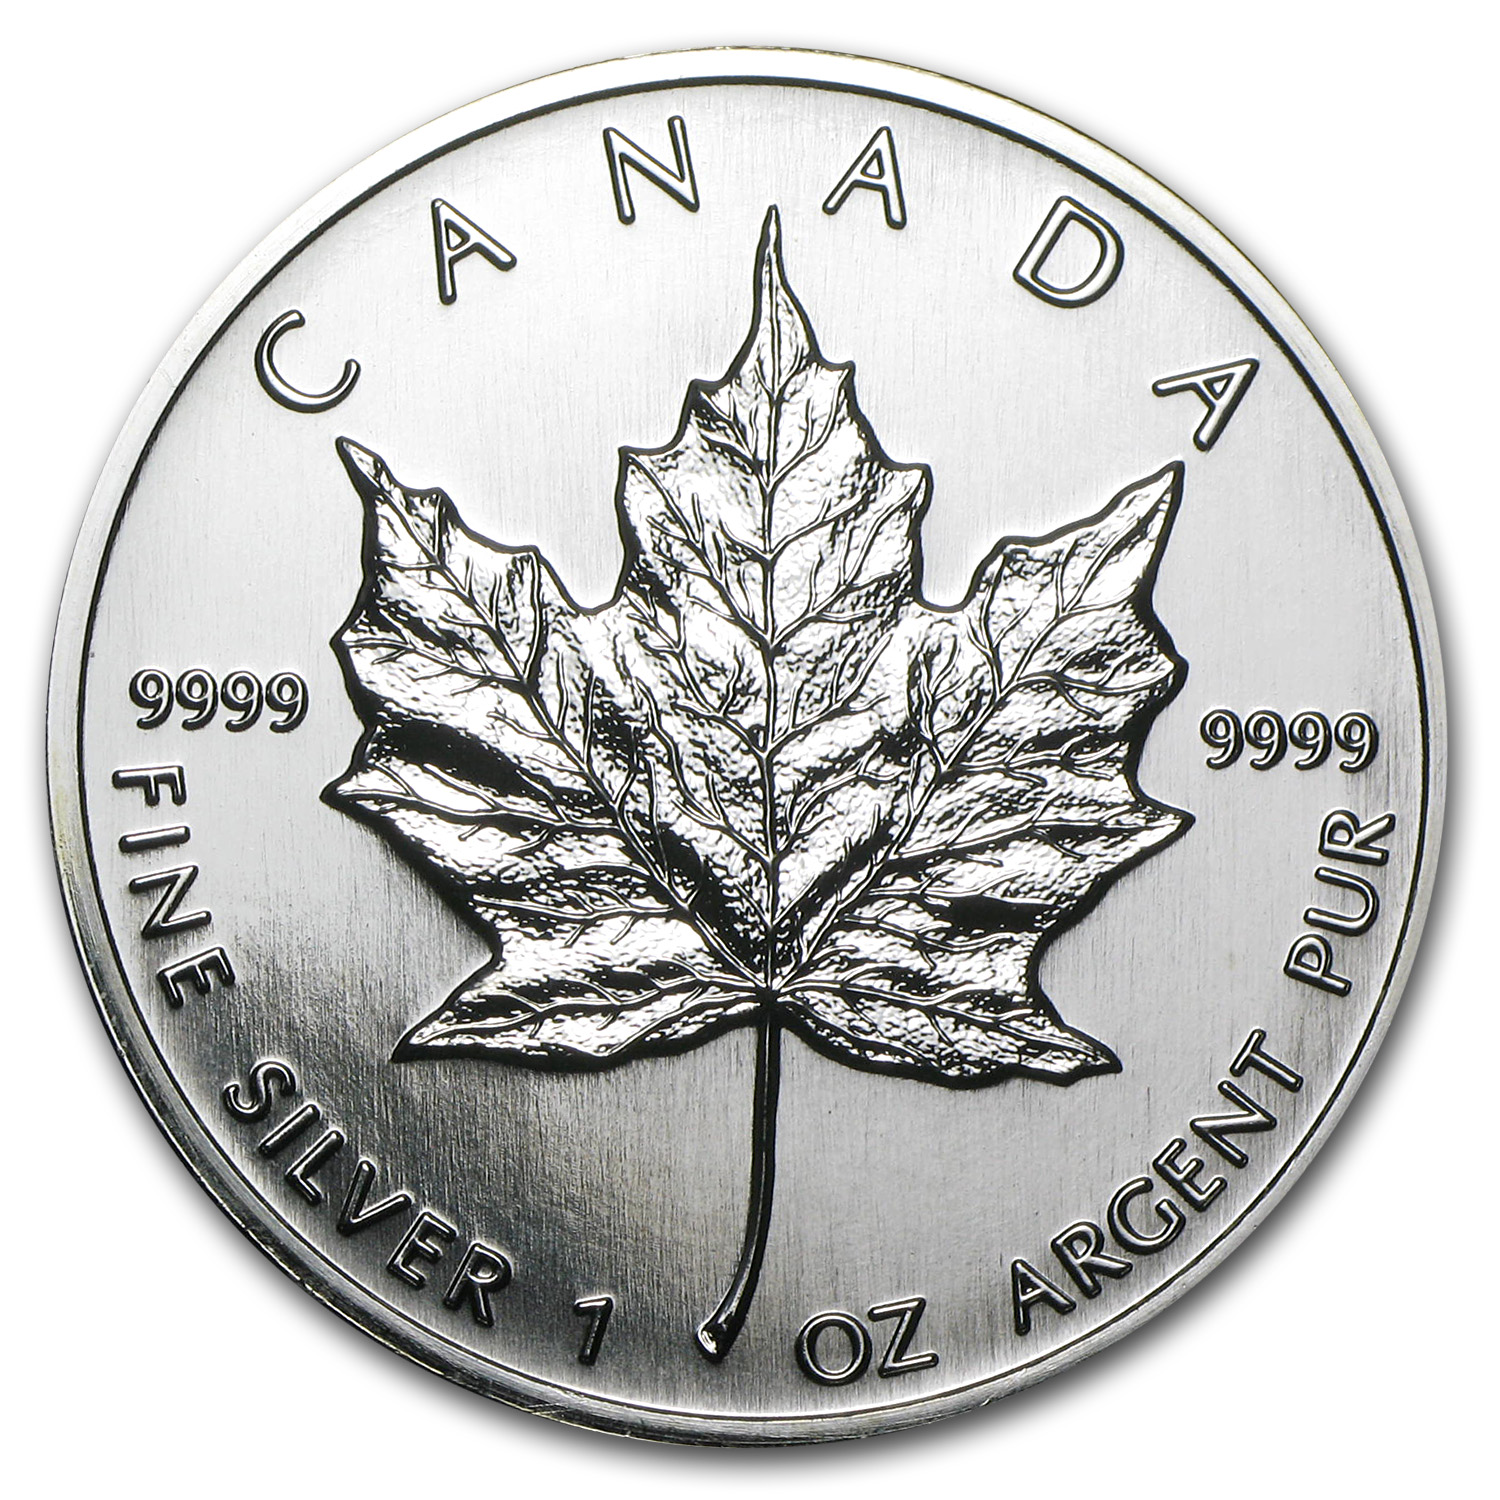 1996 Canada 1 oz Silver Maple Leaf BU